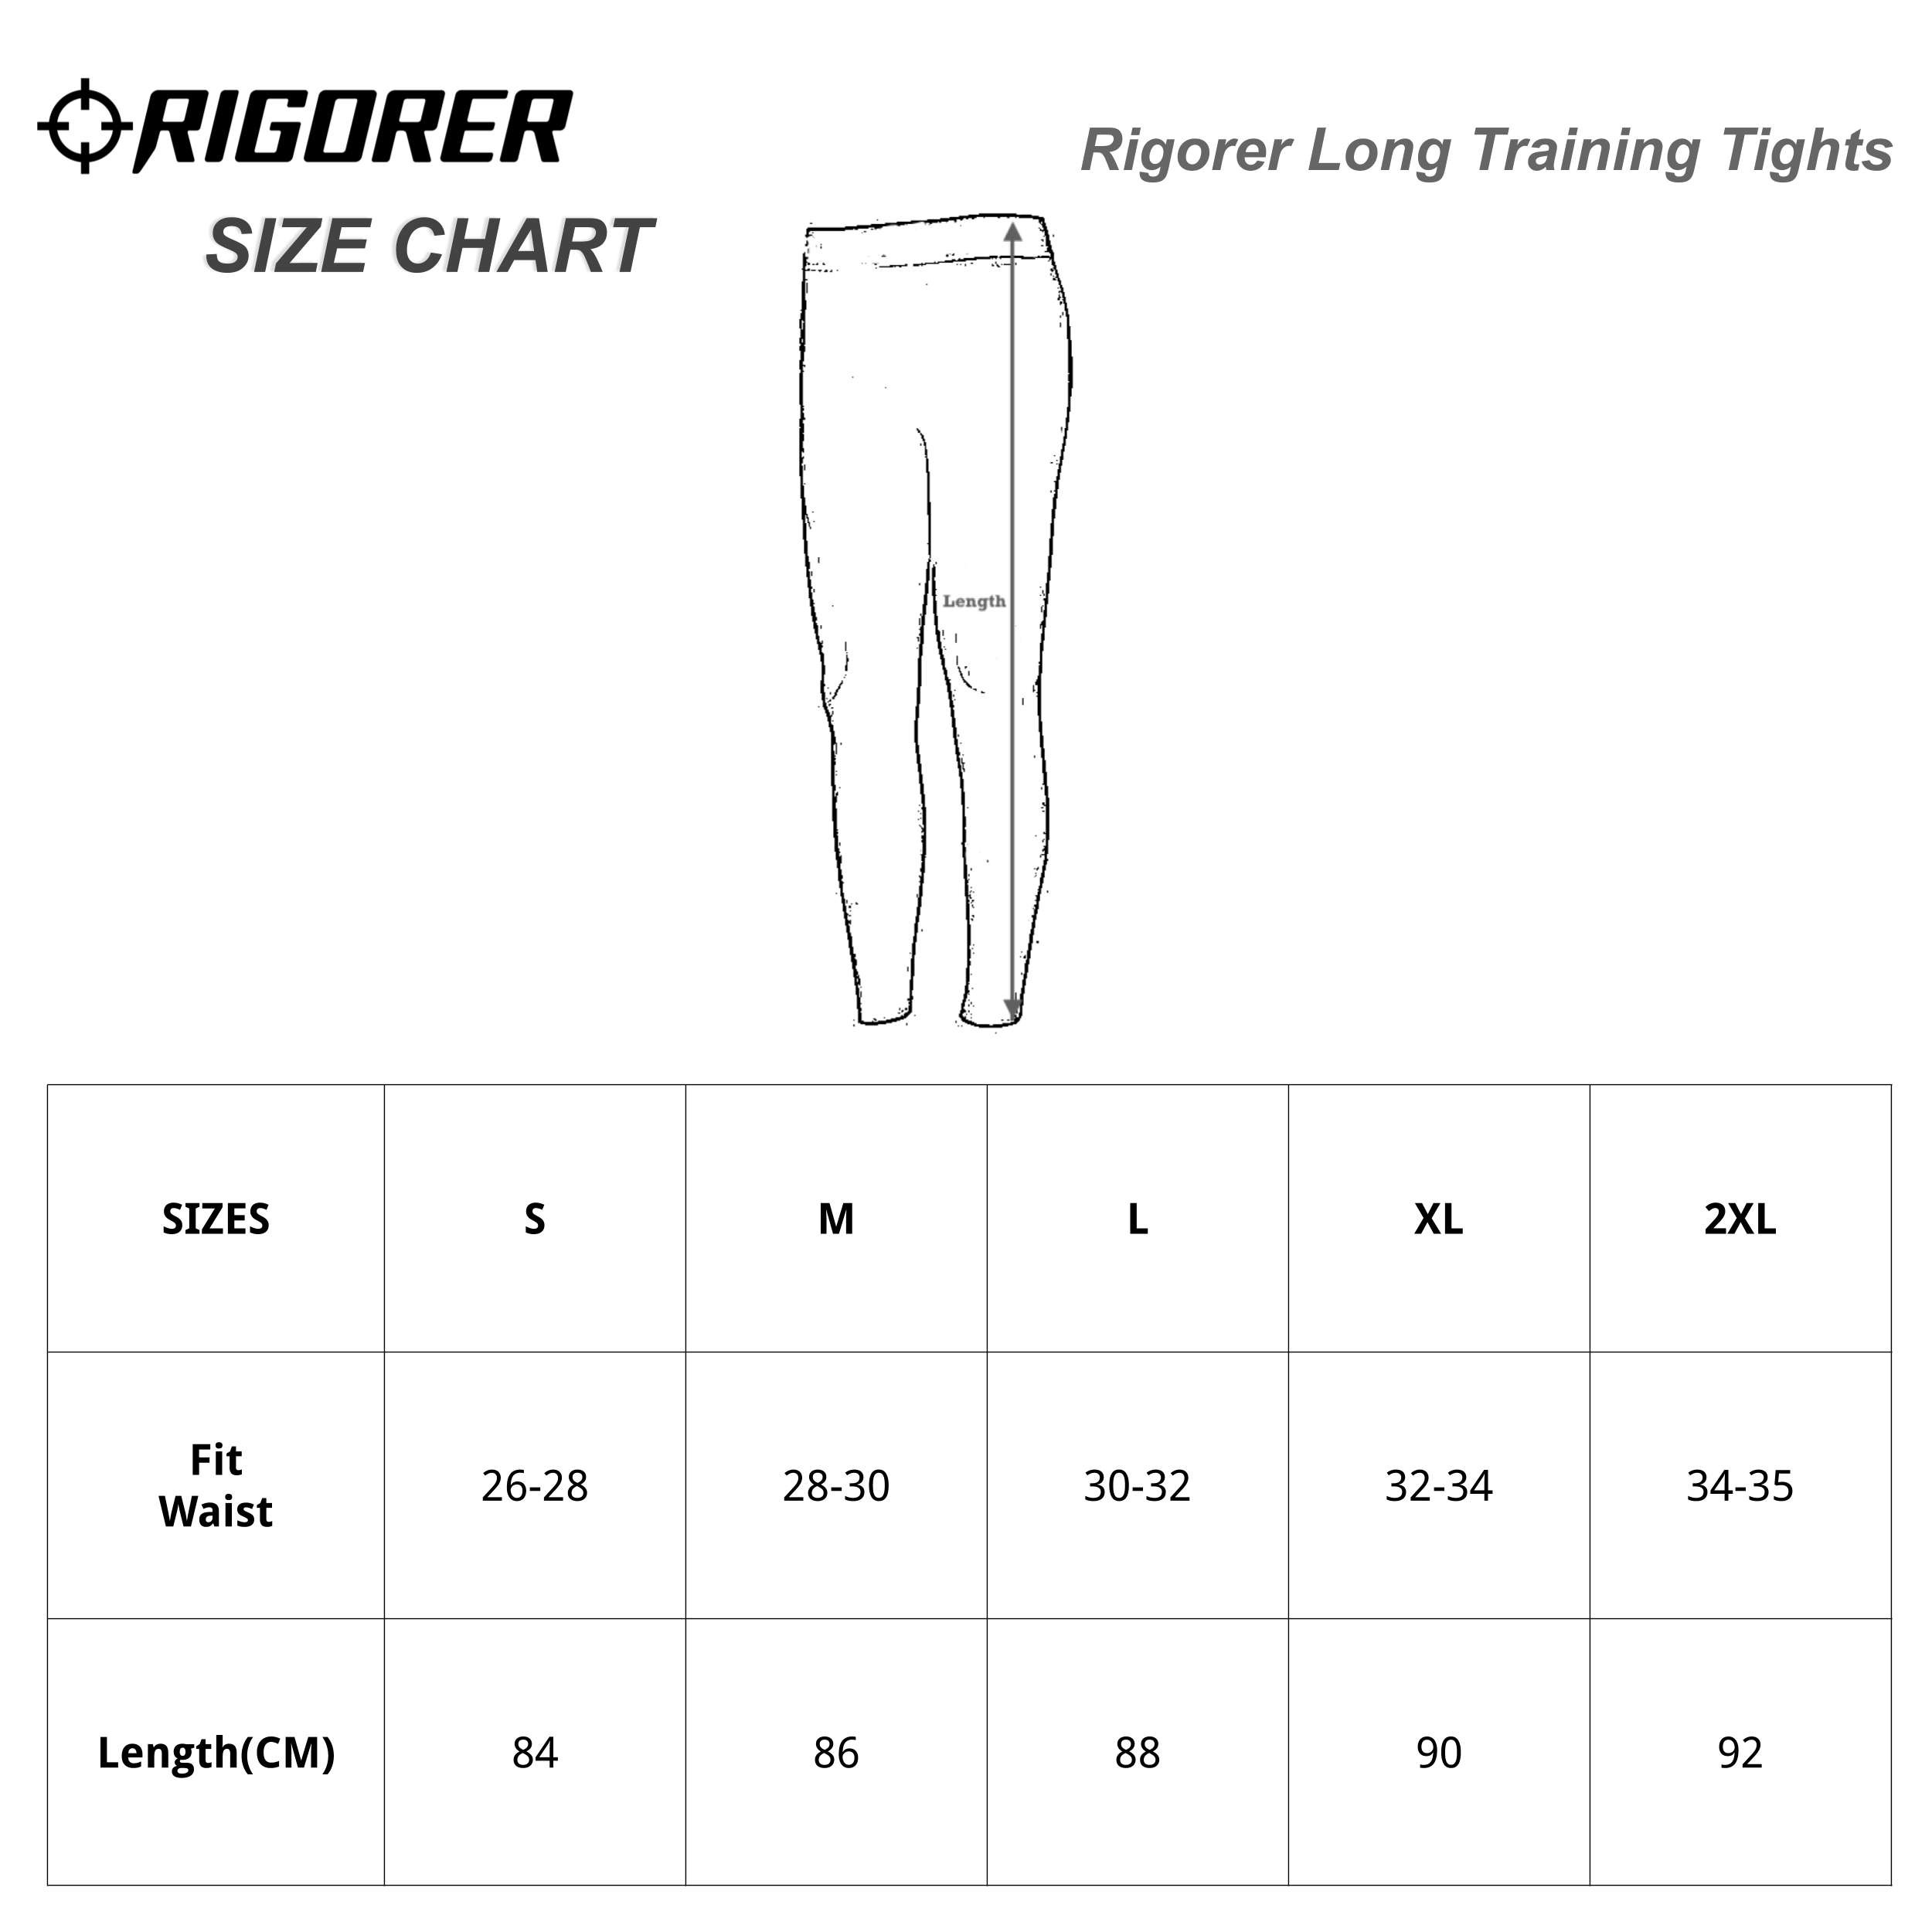 Rigorer Long Training Tights Sizing Chart